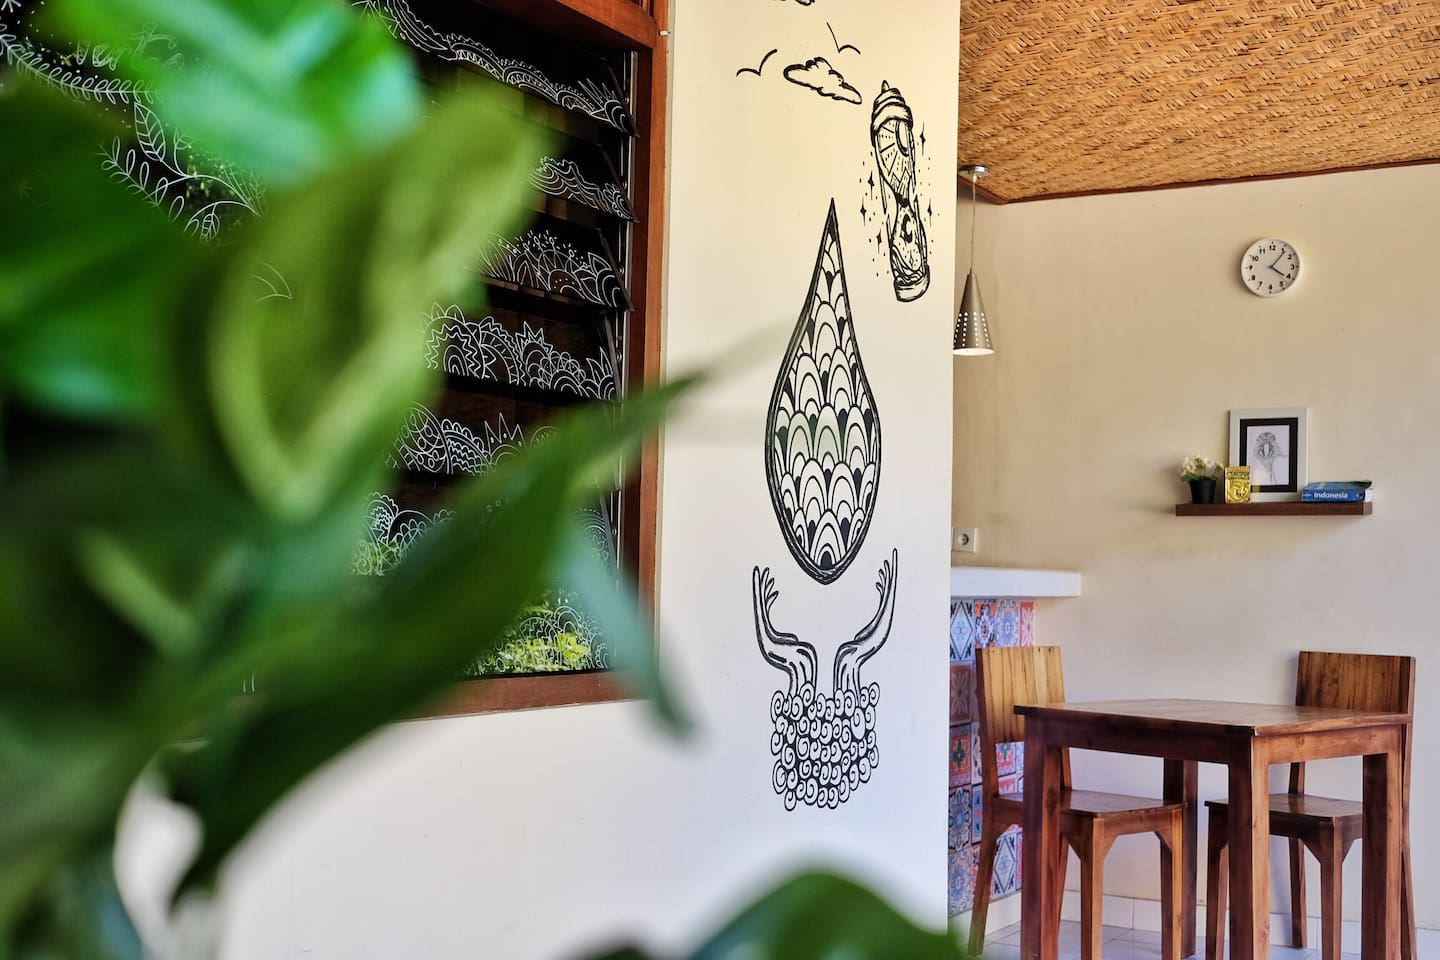 """Roemah Tirta literally means """"Water Home"""". You can expect to see this identity on the murals in the house."""